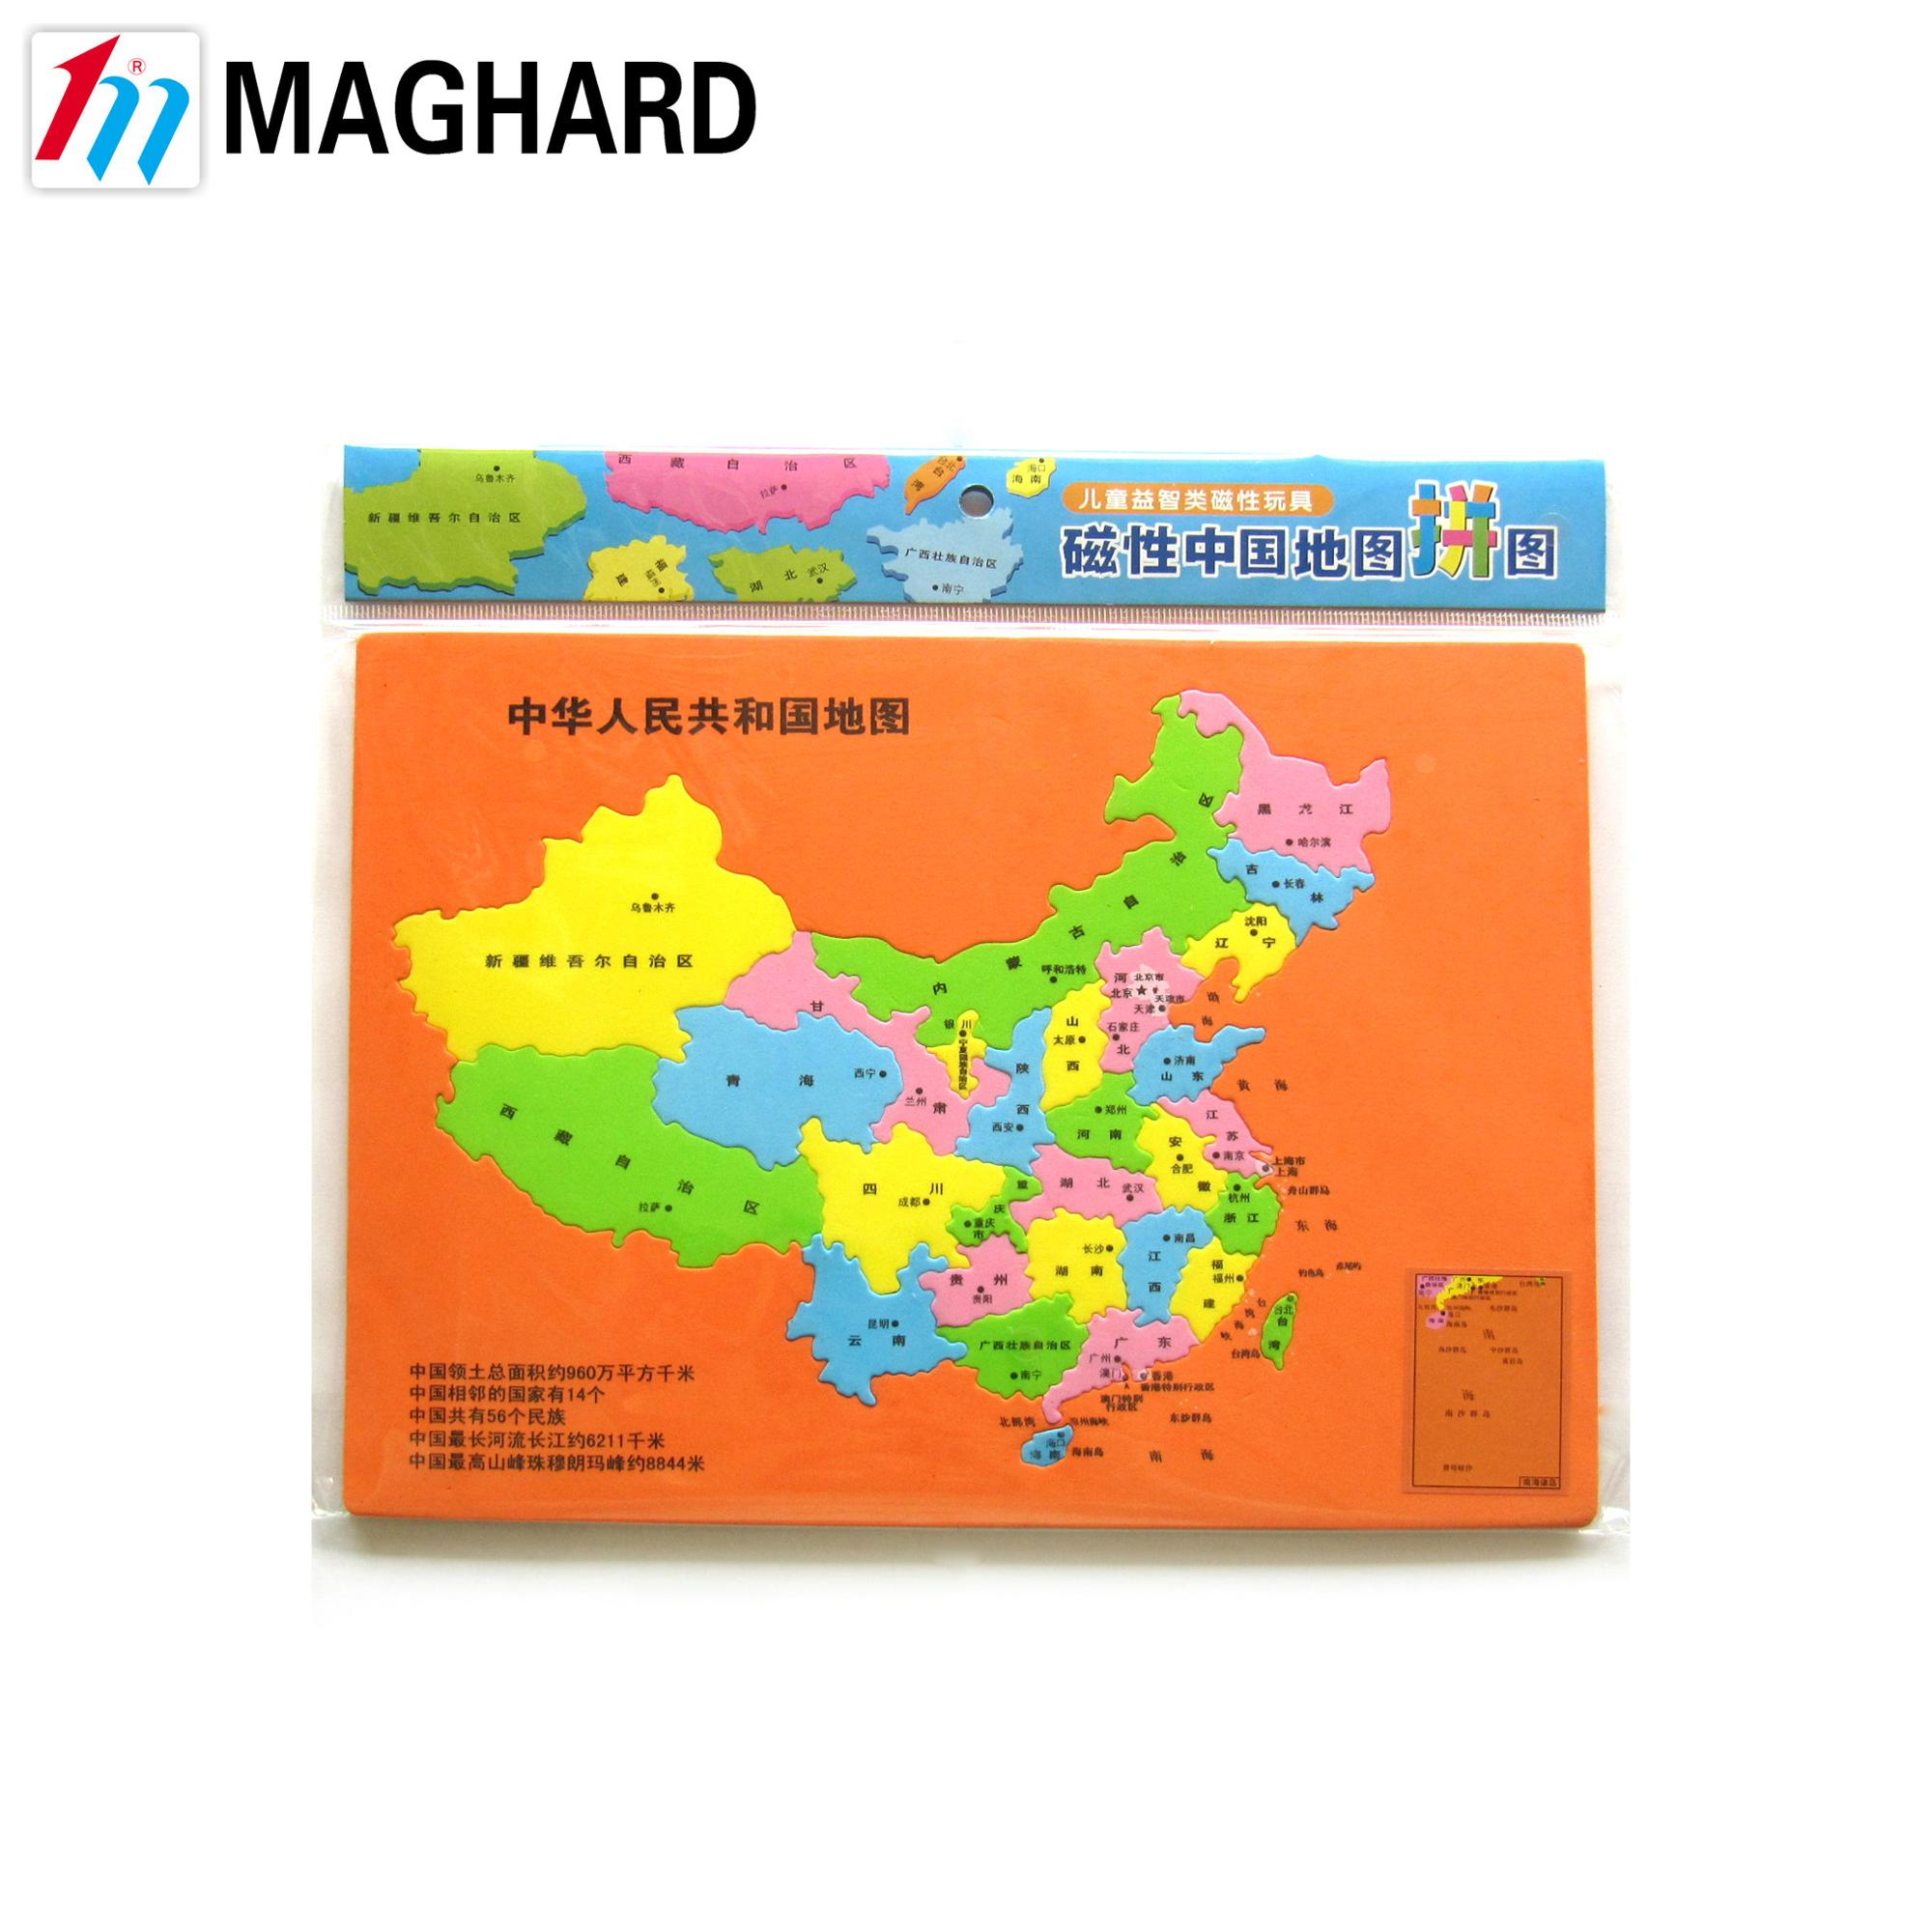 China City Magnetic Eva Foam Map Puzzle - Buy Eva Foam Magnetic  Puzzle,China City Map Magnet,Custom Magnetic Eva Foam Letters Product on  Alibaba.com